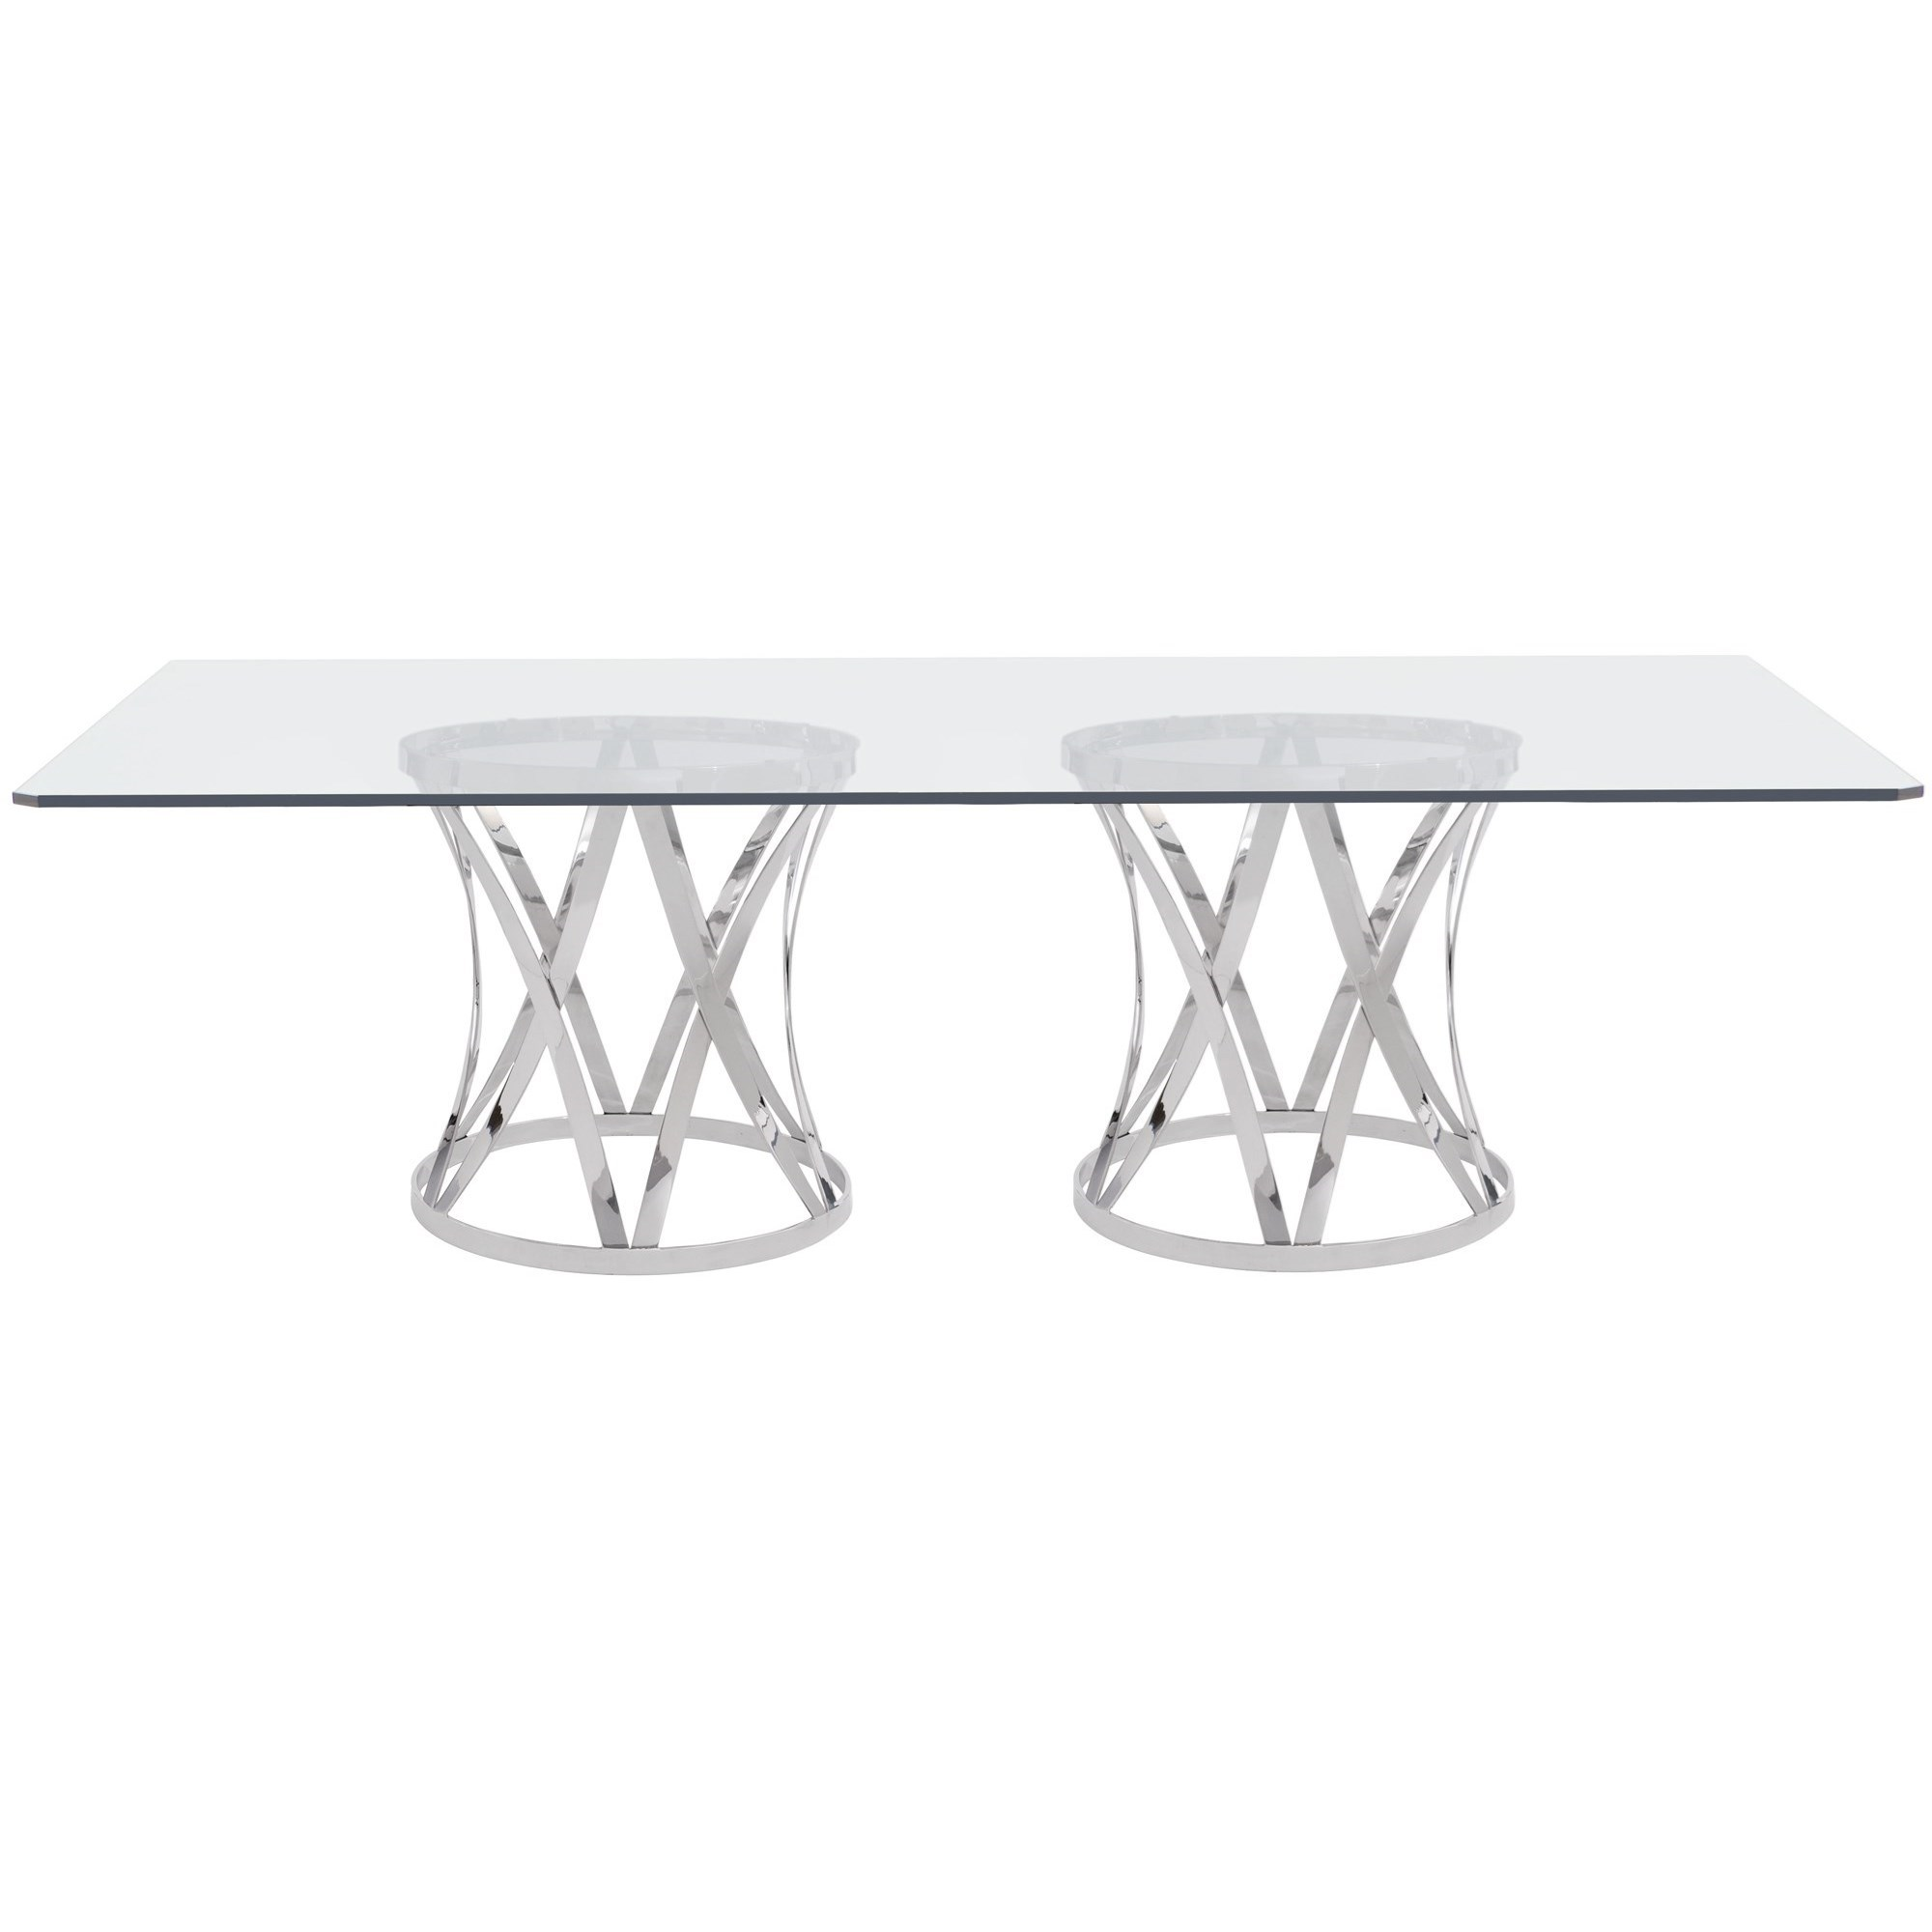 Bernhardt Interiors Gustav 326 1050 330 774 Contemporary Rectangular Dining Table With Glass Top Baer S Furniture Dining Tables